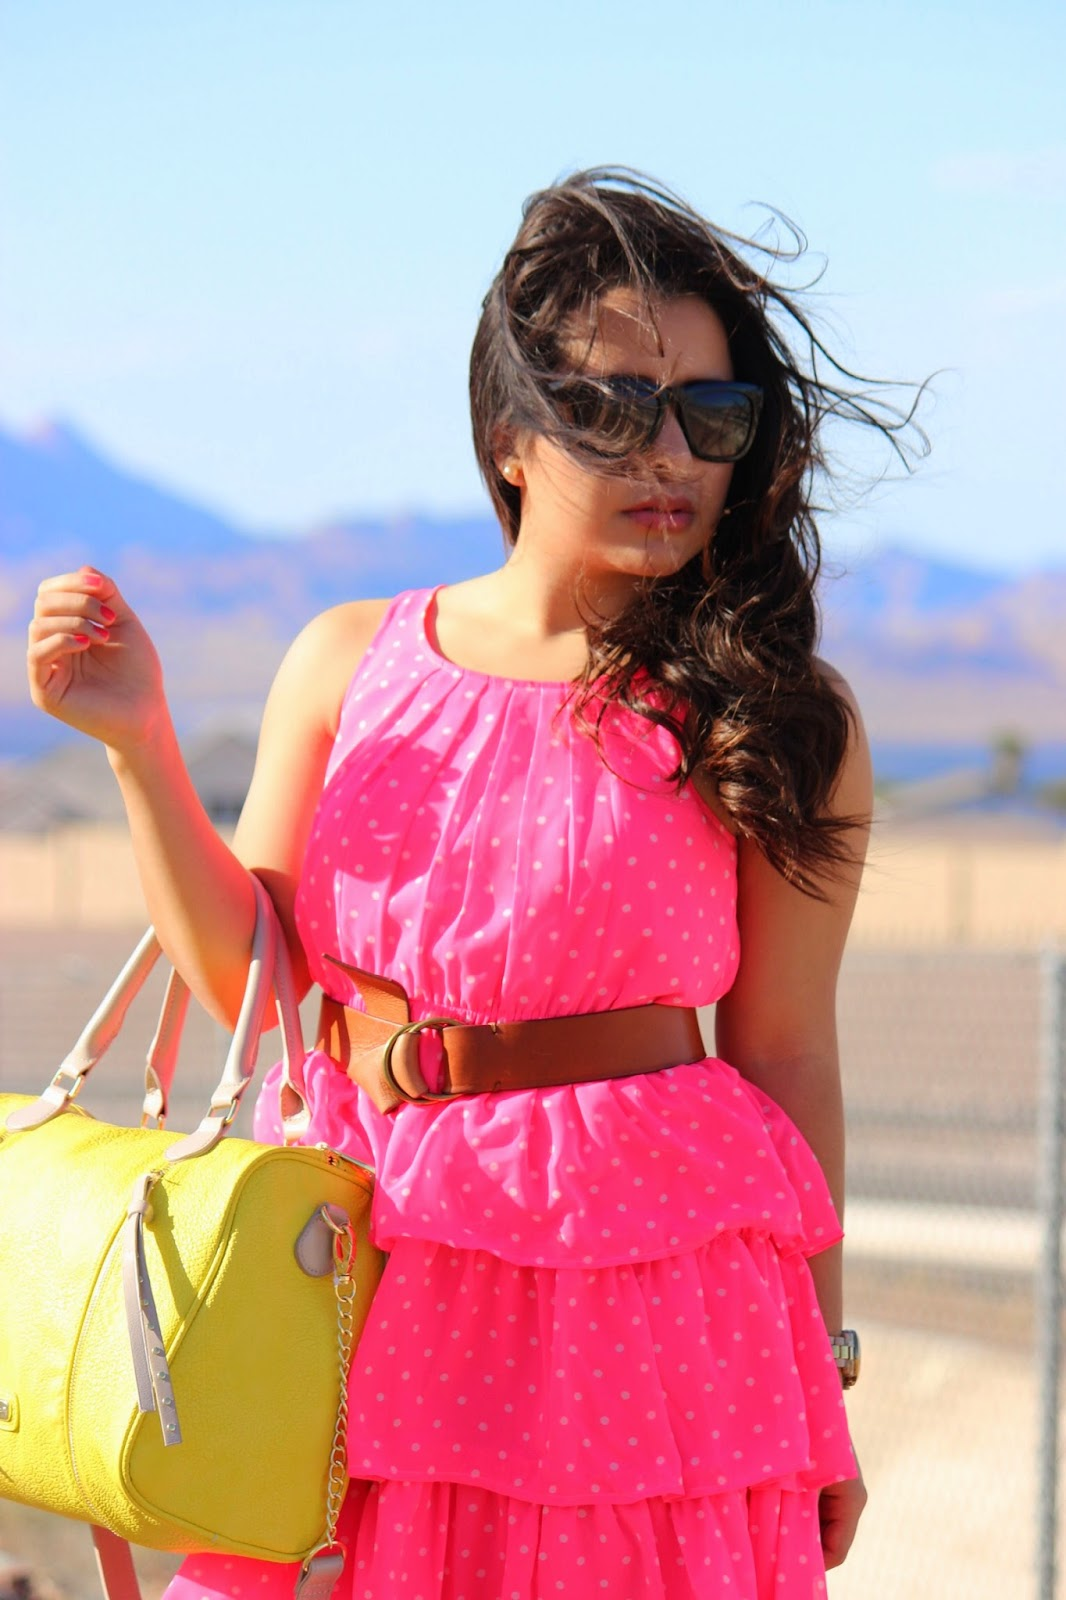 Neon ruffled dress, neon polka dot dress, neon satchel, steve madden neon handbag